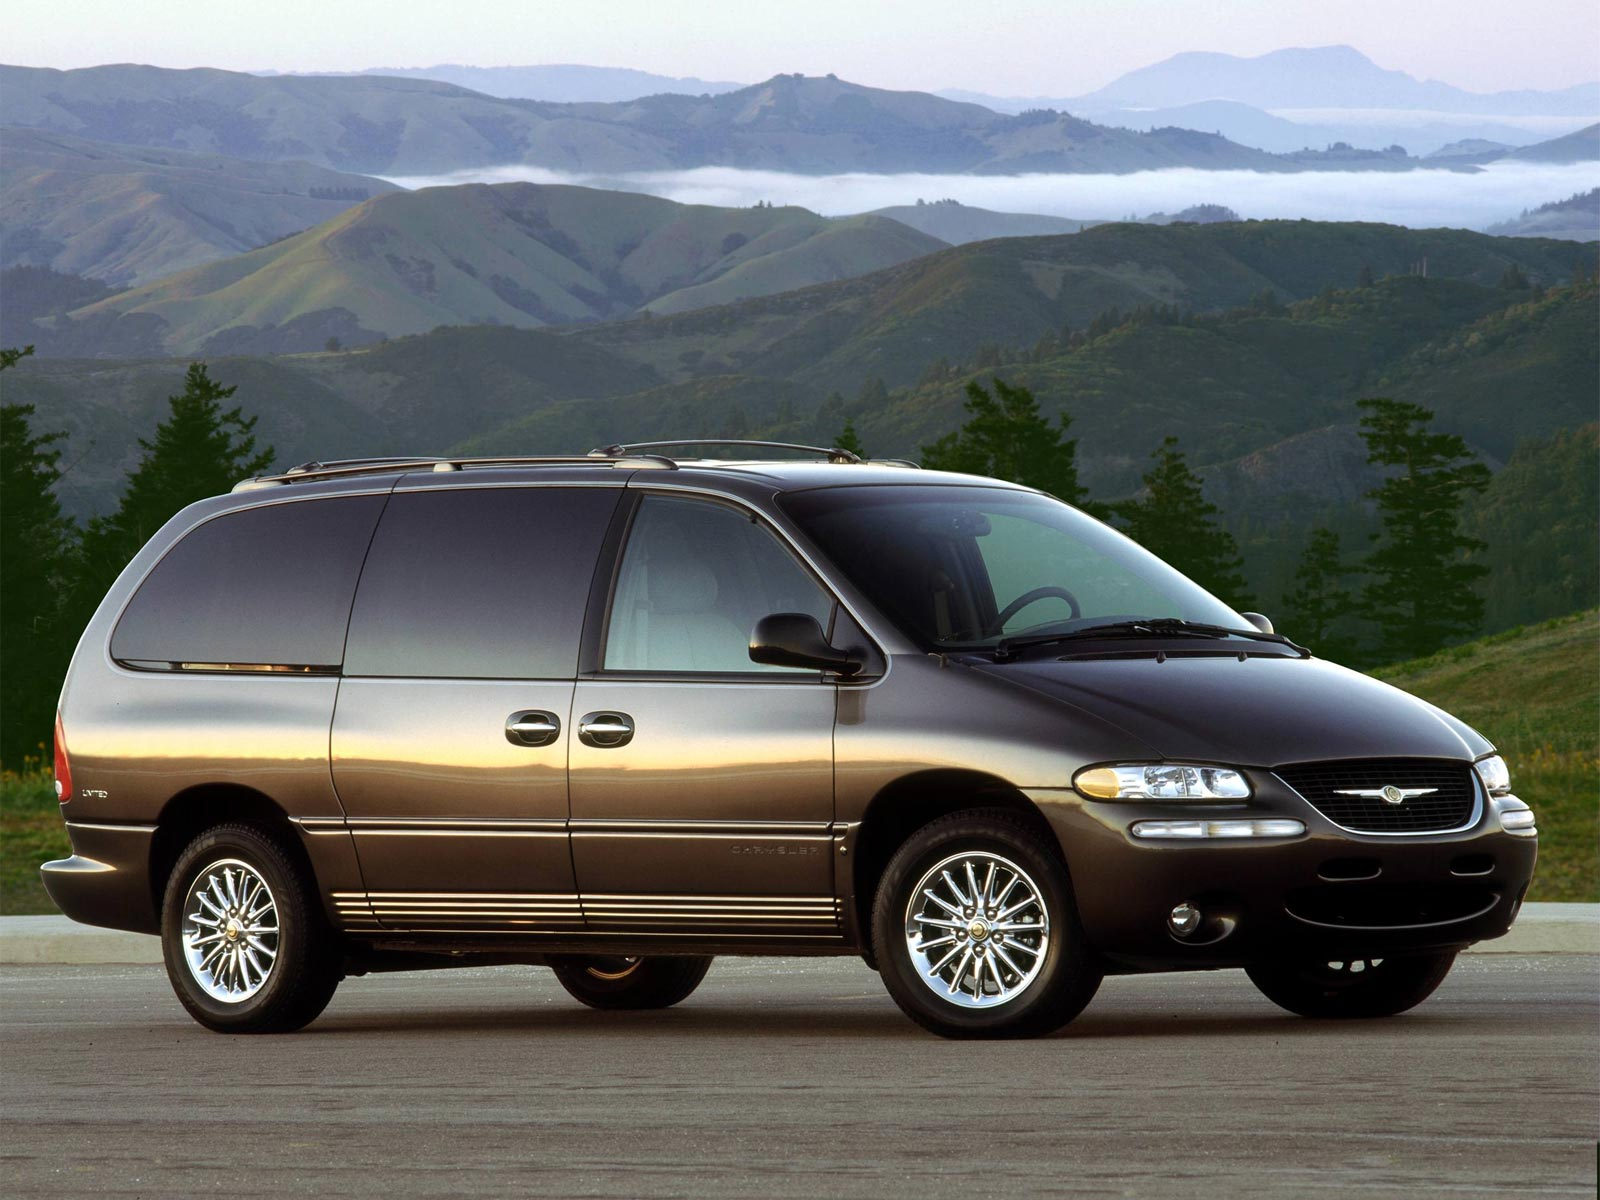 2000 chrysler town and country information and photos momentcar. Black Bedroom Furniture Sets. Home Design Ideas